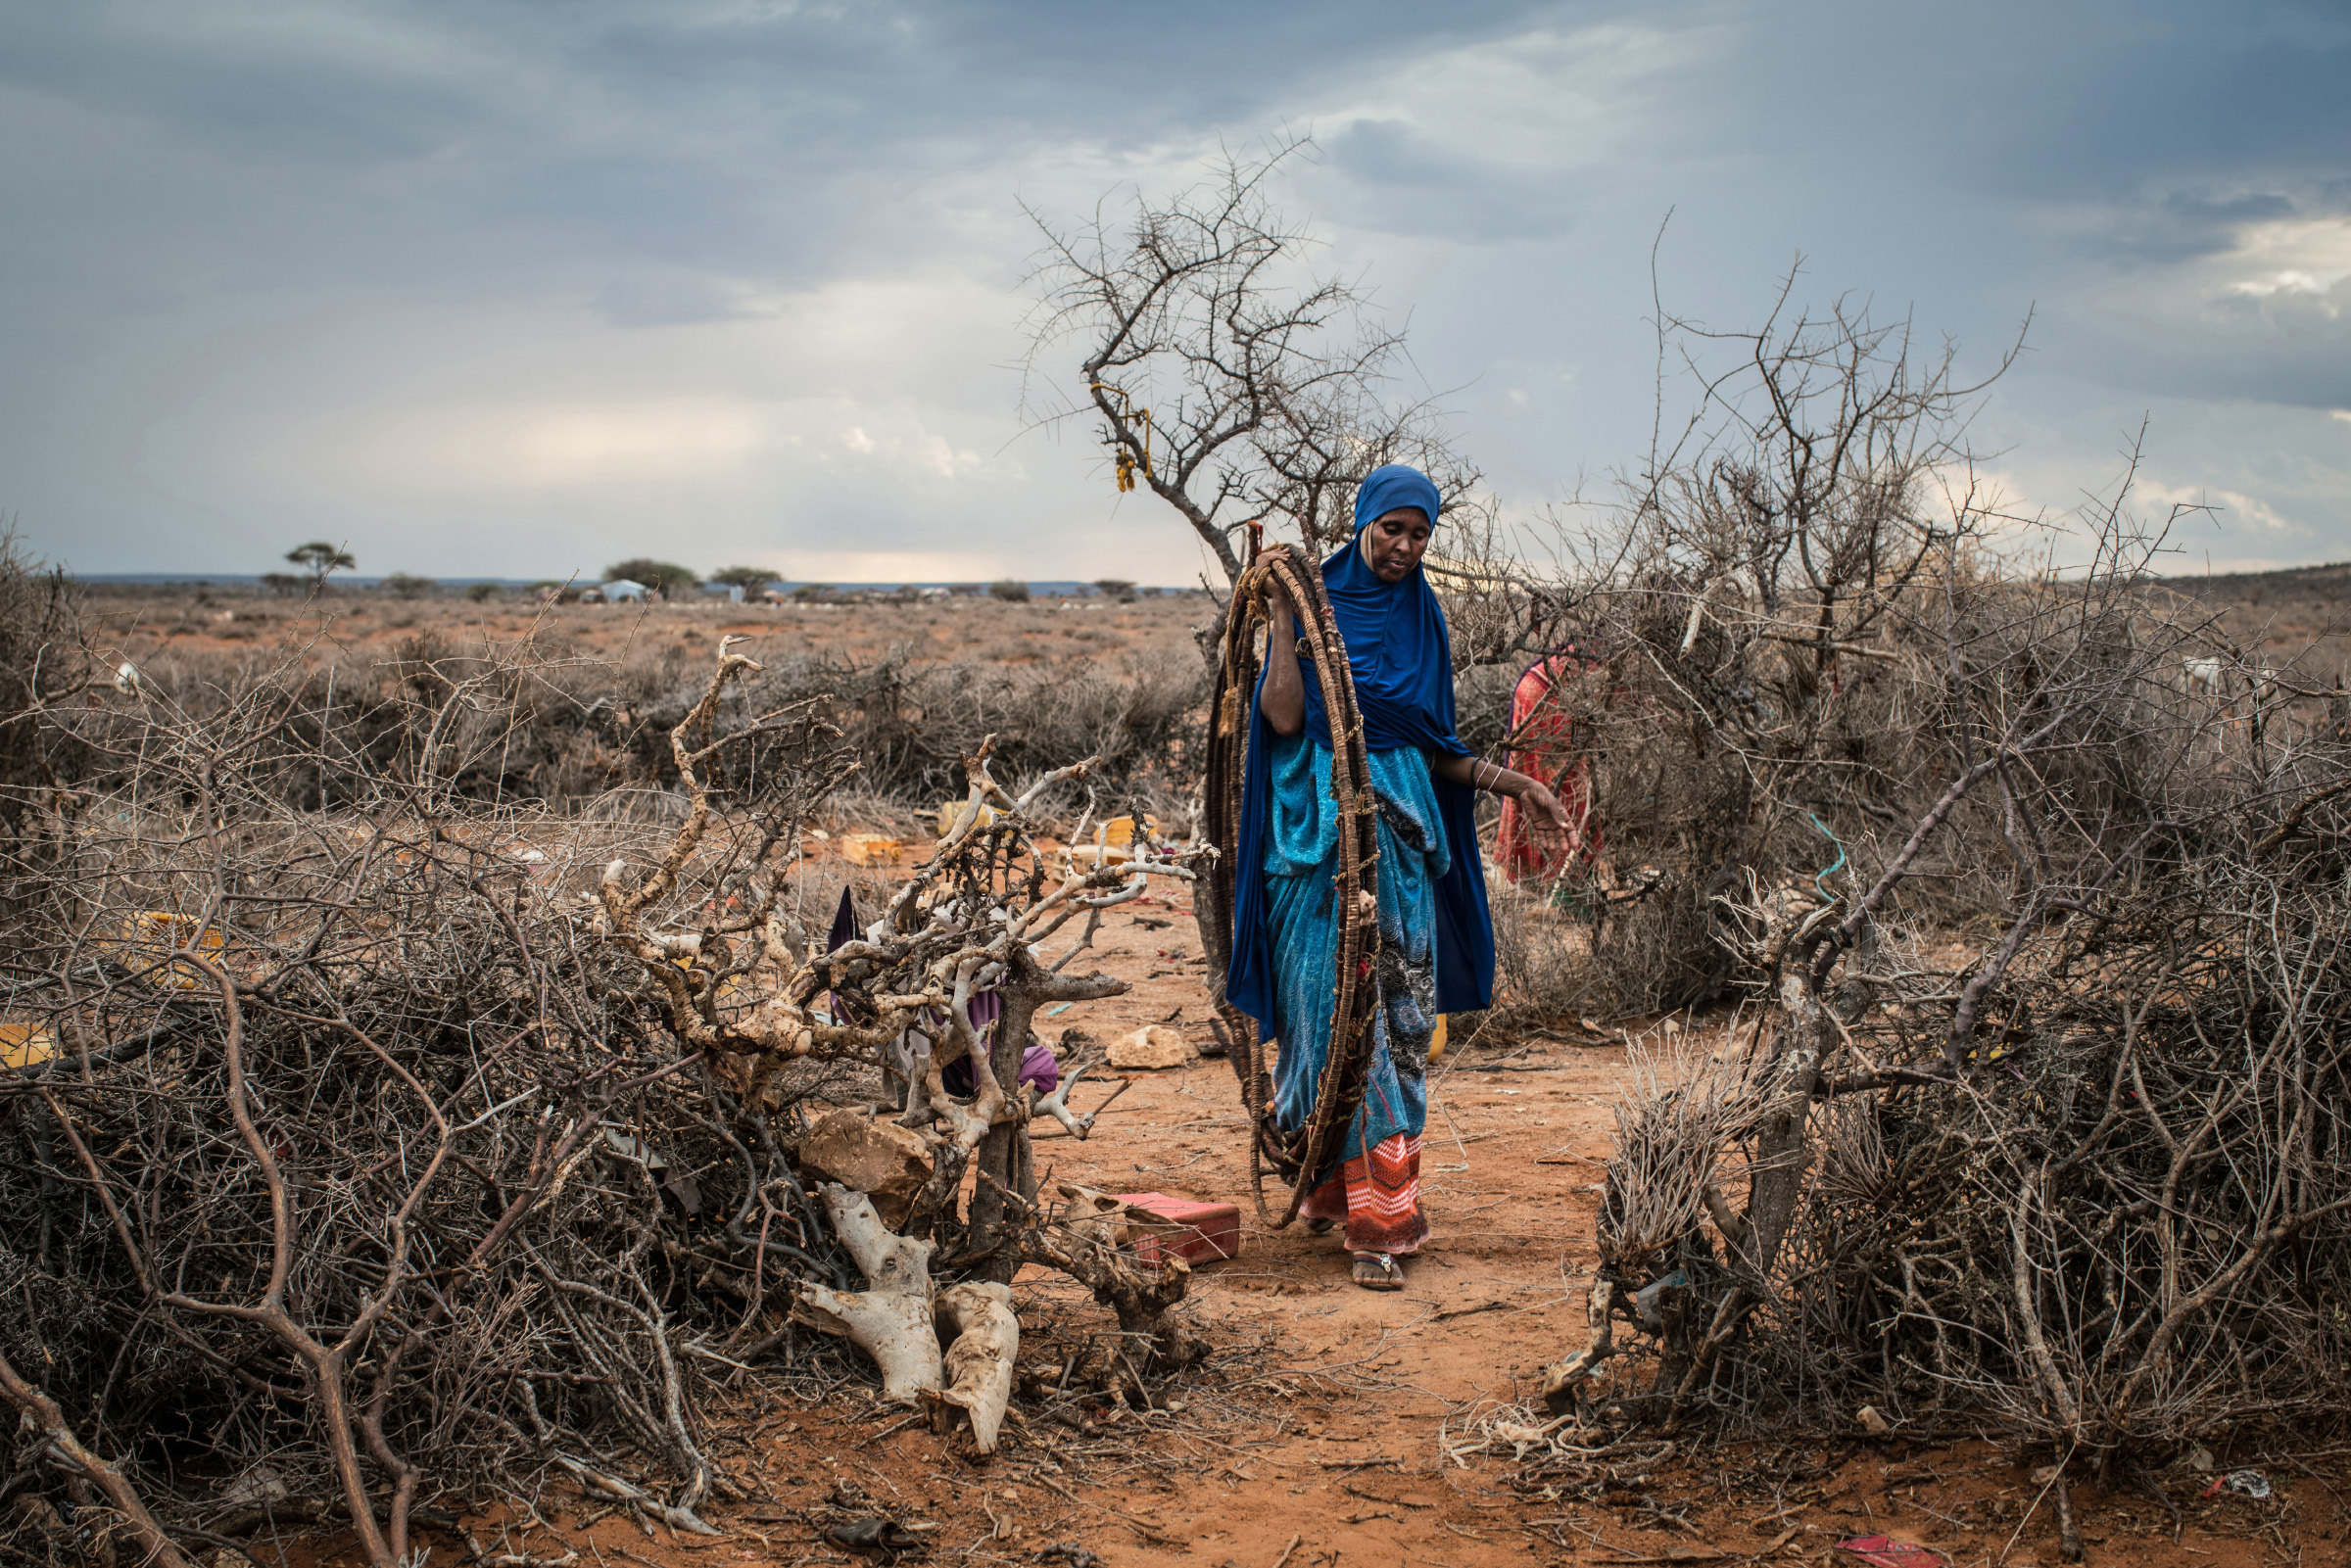 Dheg Mohamed takes apart her home before loading the materials onto a cart to be moved. Several successive seasons of low rainfall left the well in her family's hometown of Aynabo, Somaliland, dry, forcing them to relocate elsewhere. (Photo by Nichole Sobecki/GroundTruth)